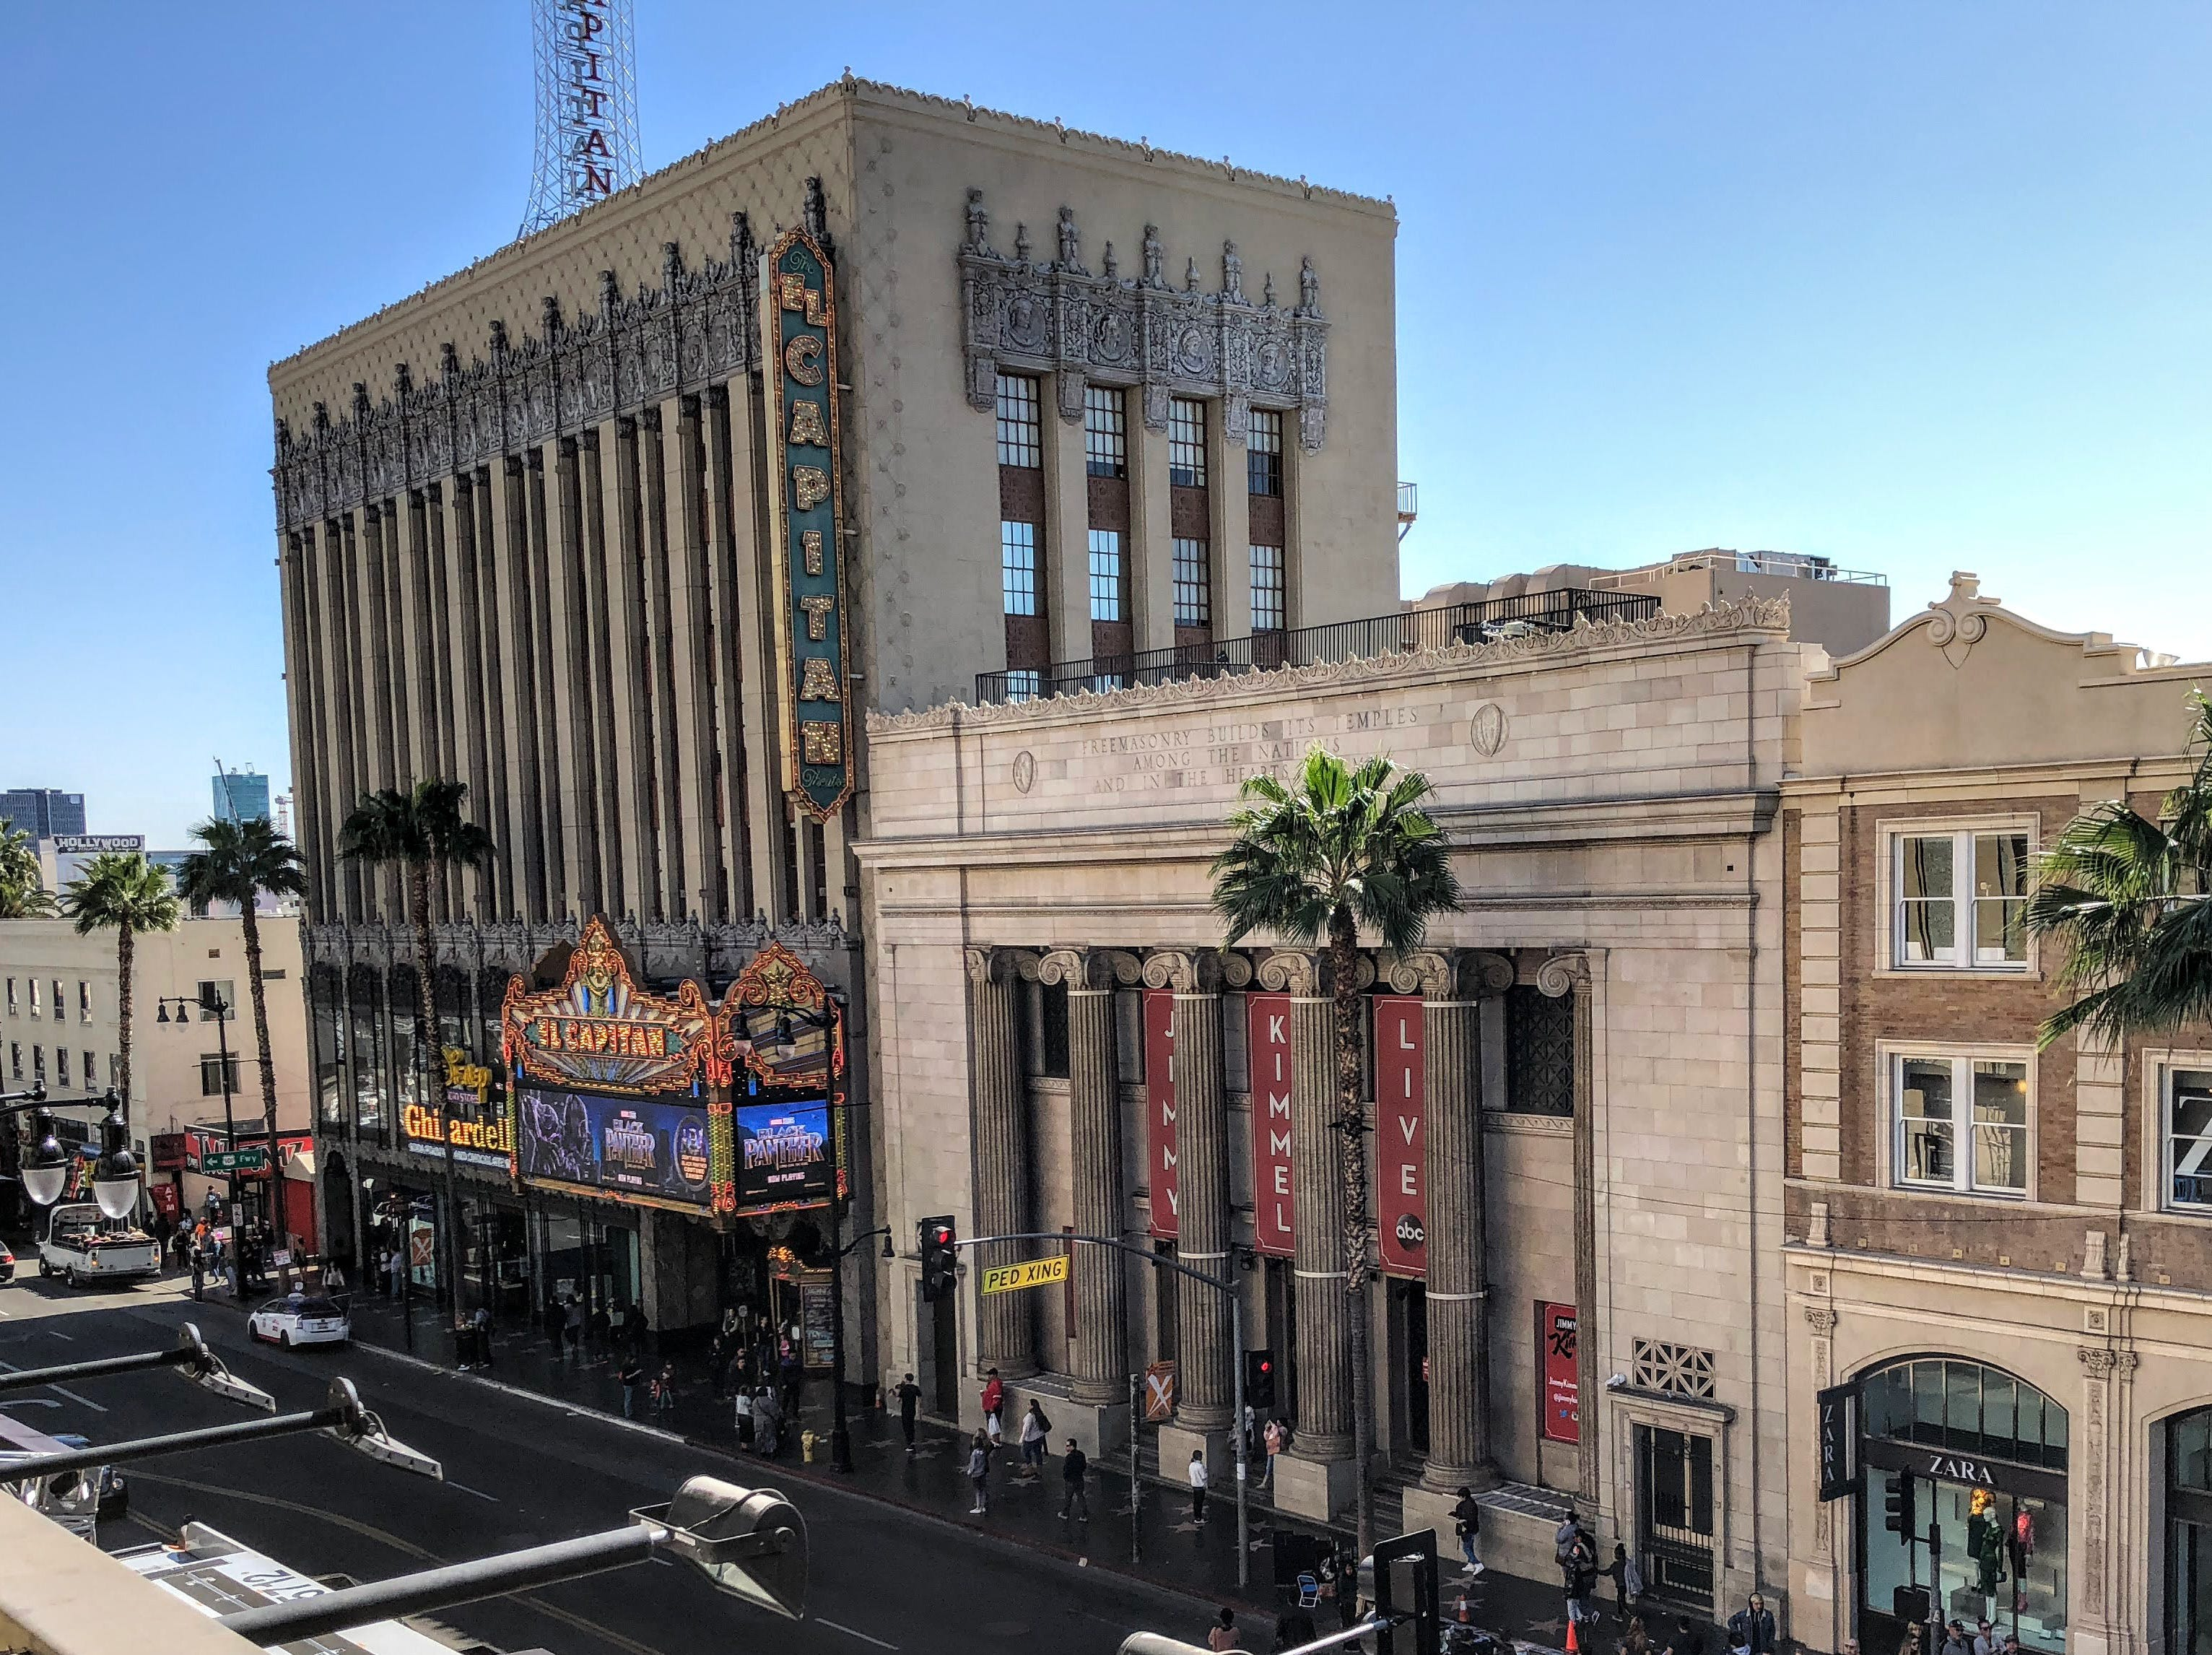 The El Capitan Theater, where Disney movies play and ABC's Jimmy Kimmel Live is taped.